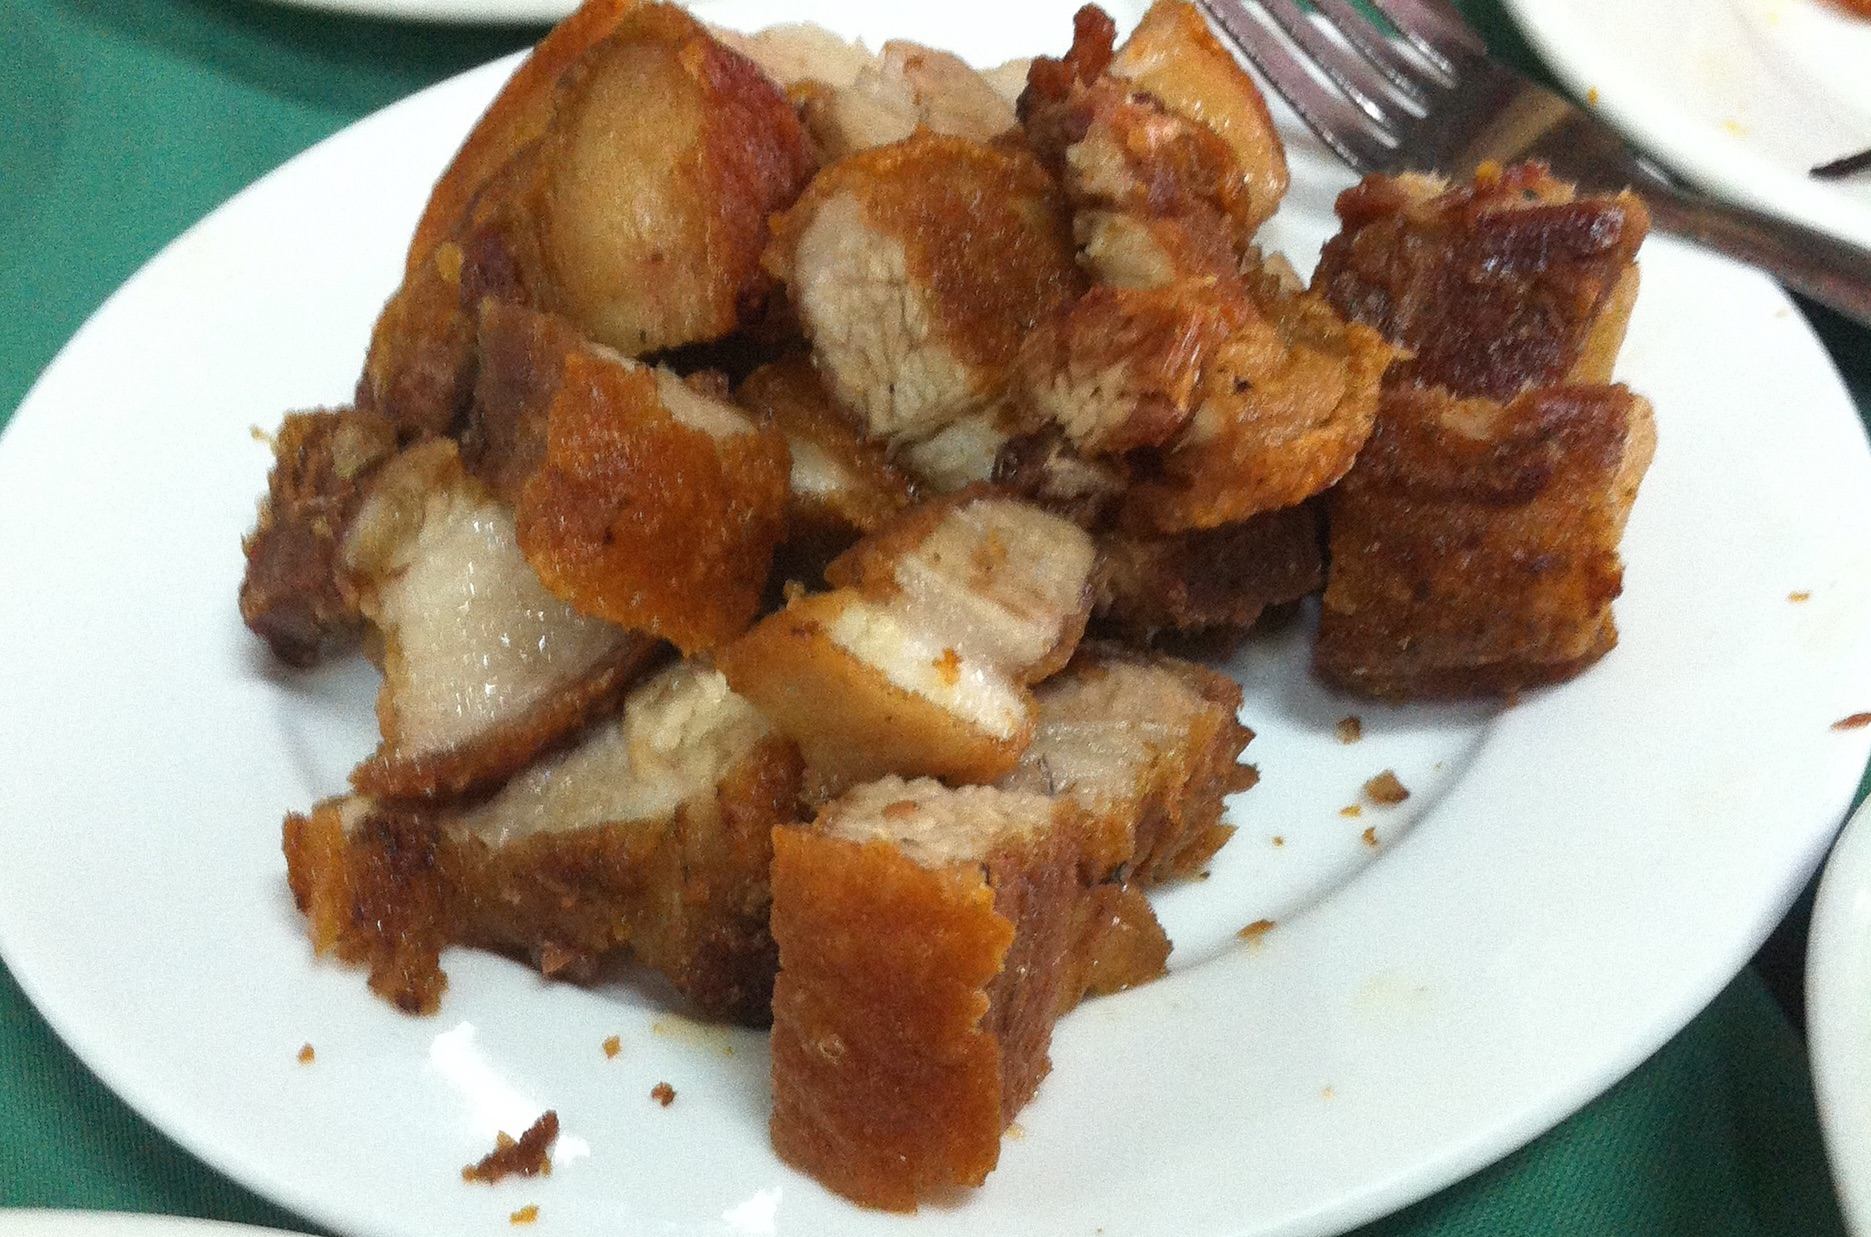 Lechon kawali! One of the many variations of fried pork meat/skin.